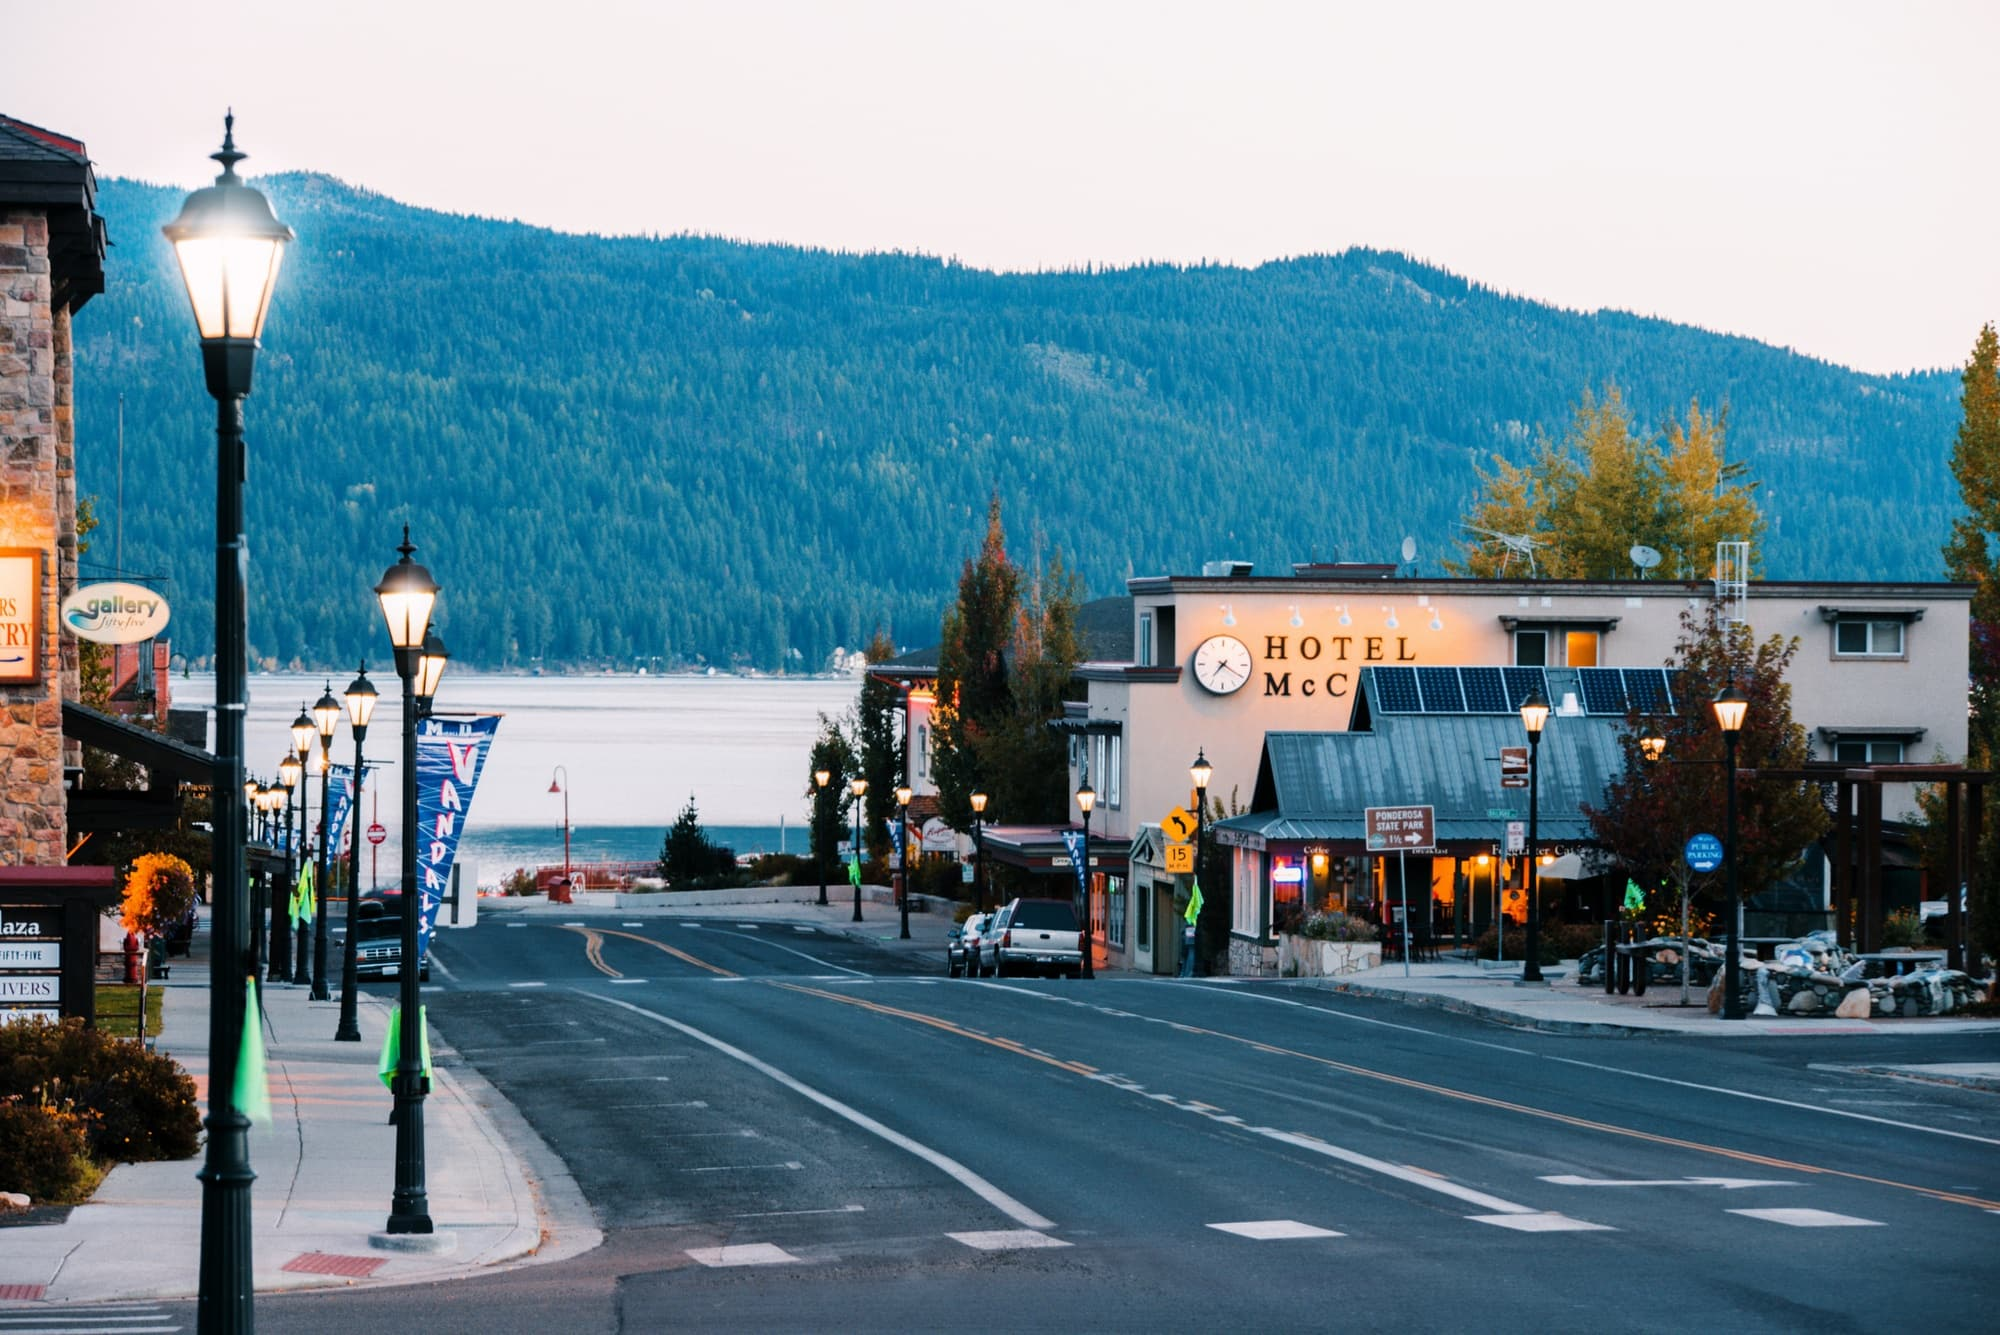 5 Best Summer Outdoor Activities in McCall, Idaho